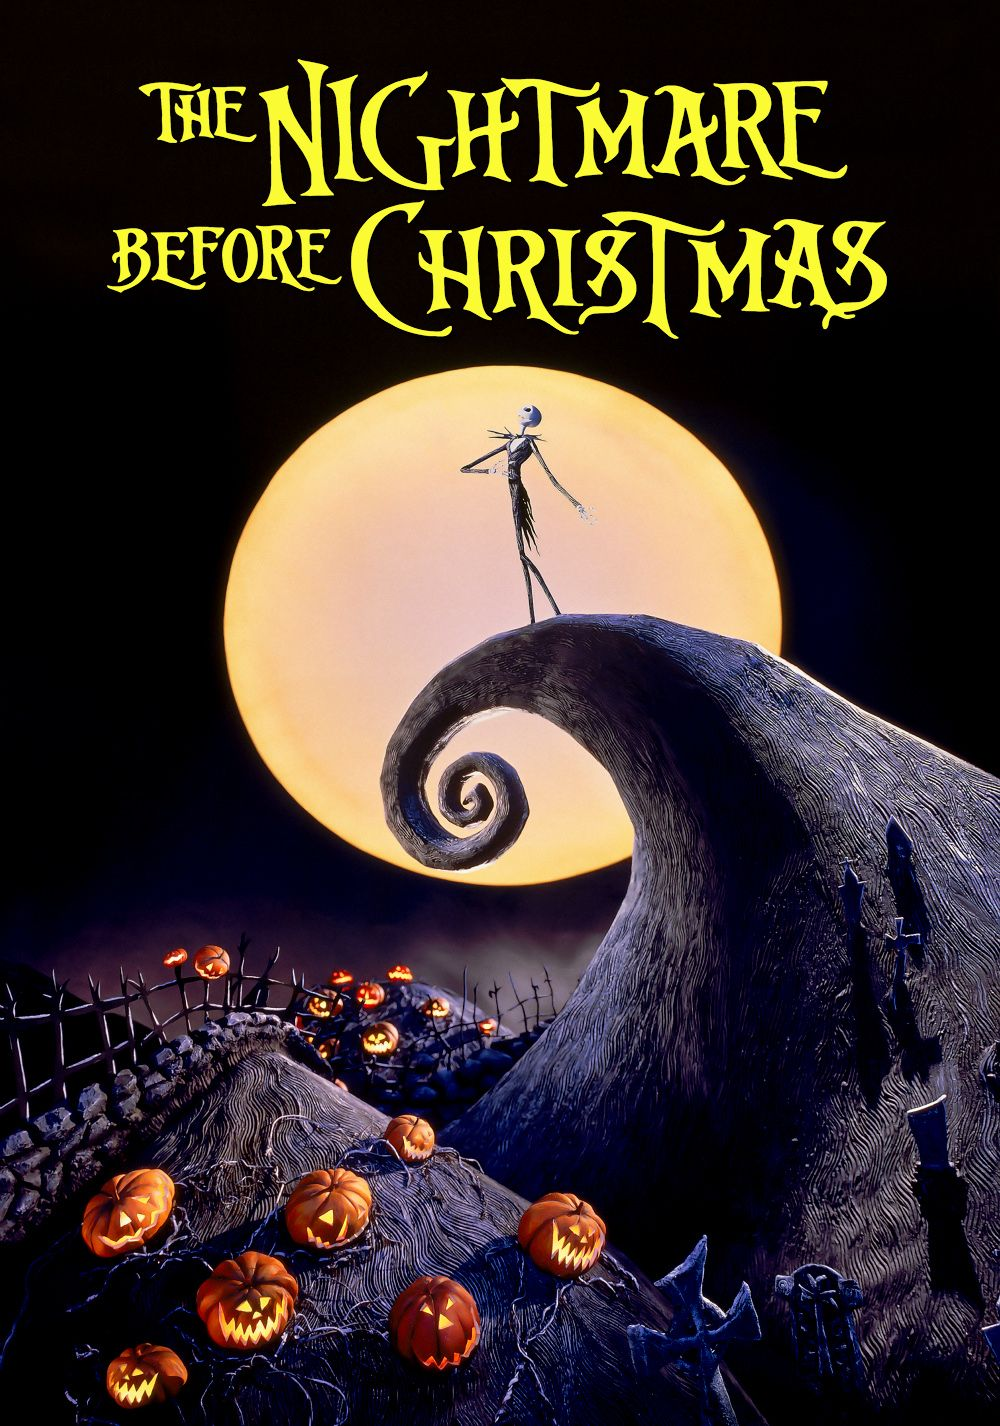 The Nightmare Before Christmas 1993 In 2020 Christmas Horror Movies Nightmare Before Christmas Movie Christmas Horror